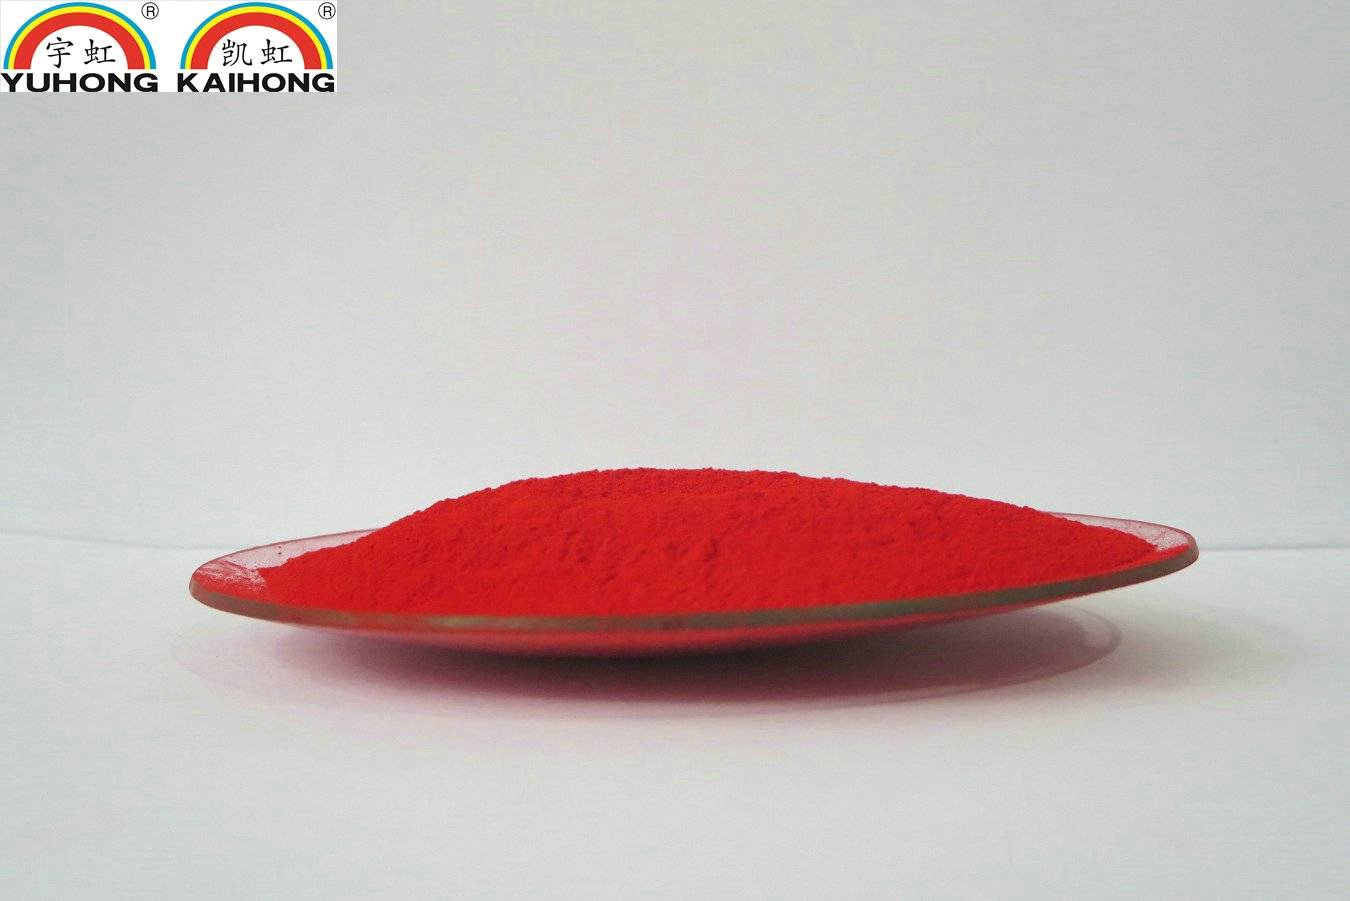 Pigment Red 254 for Ink (packing ink) ,plastic(HDPE),paint ,Pigment Red 254, P. R. 254, YHR254.